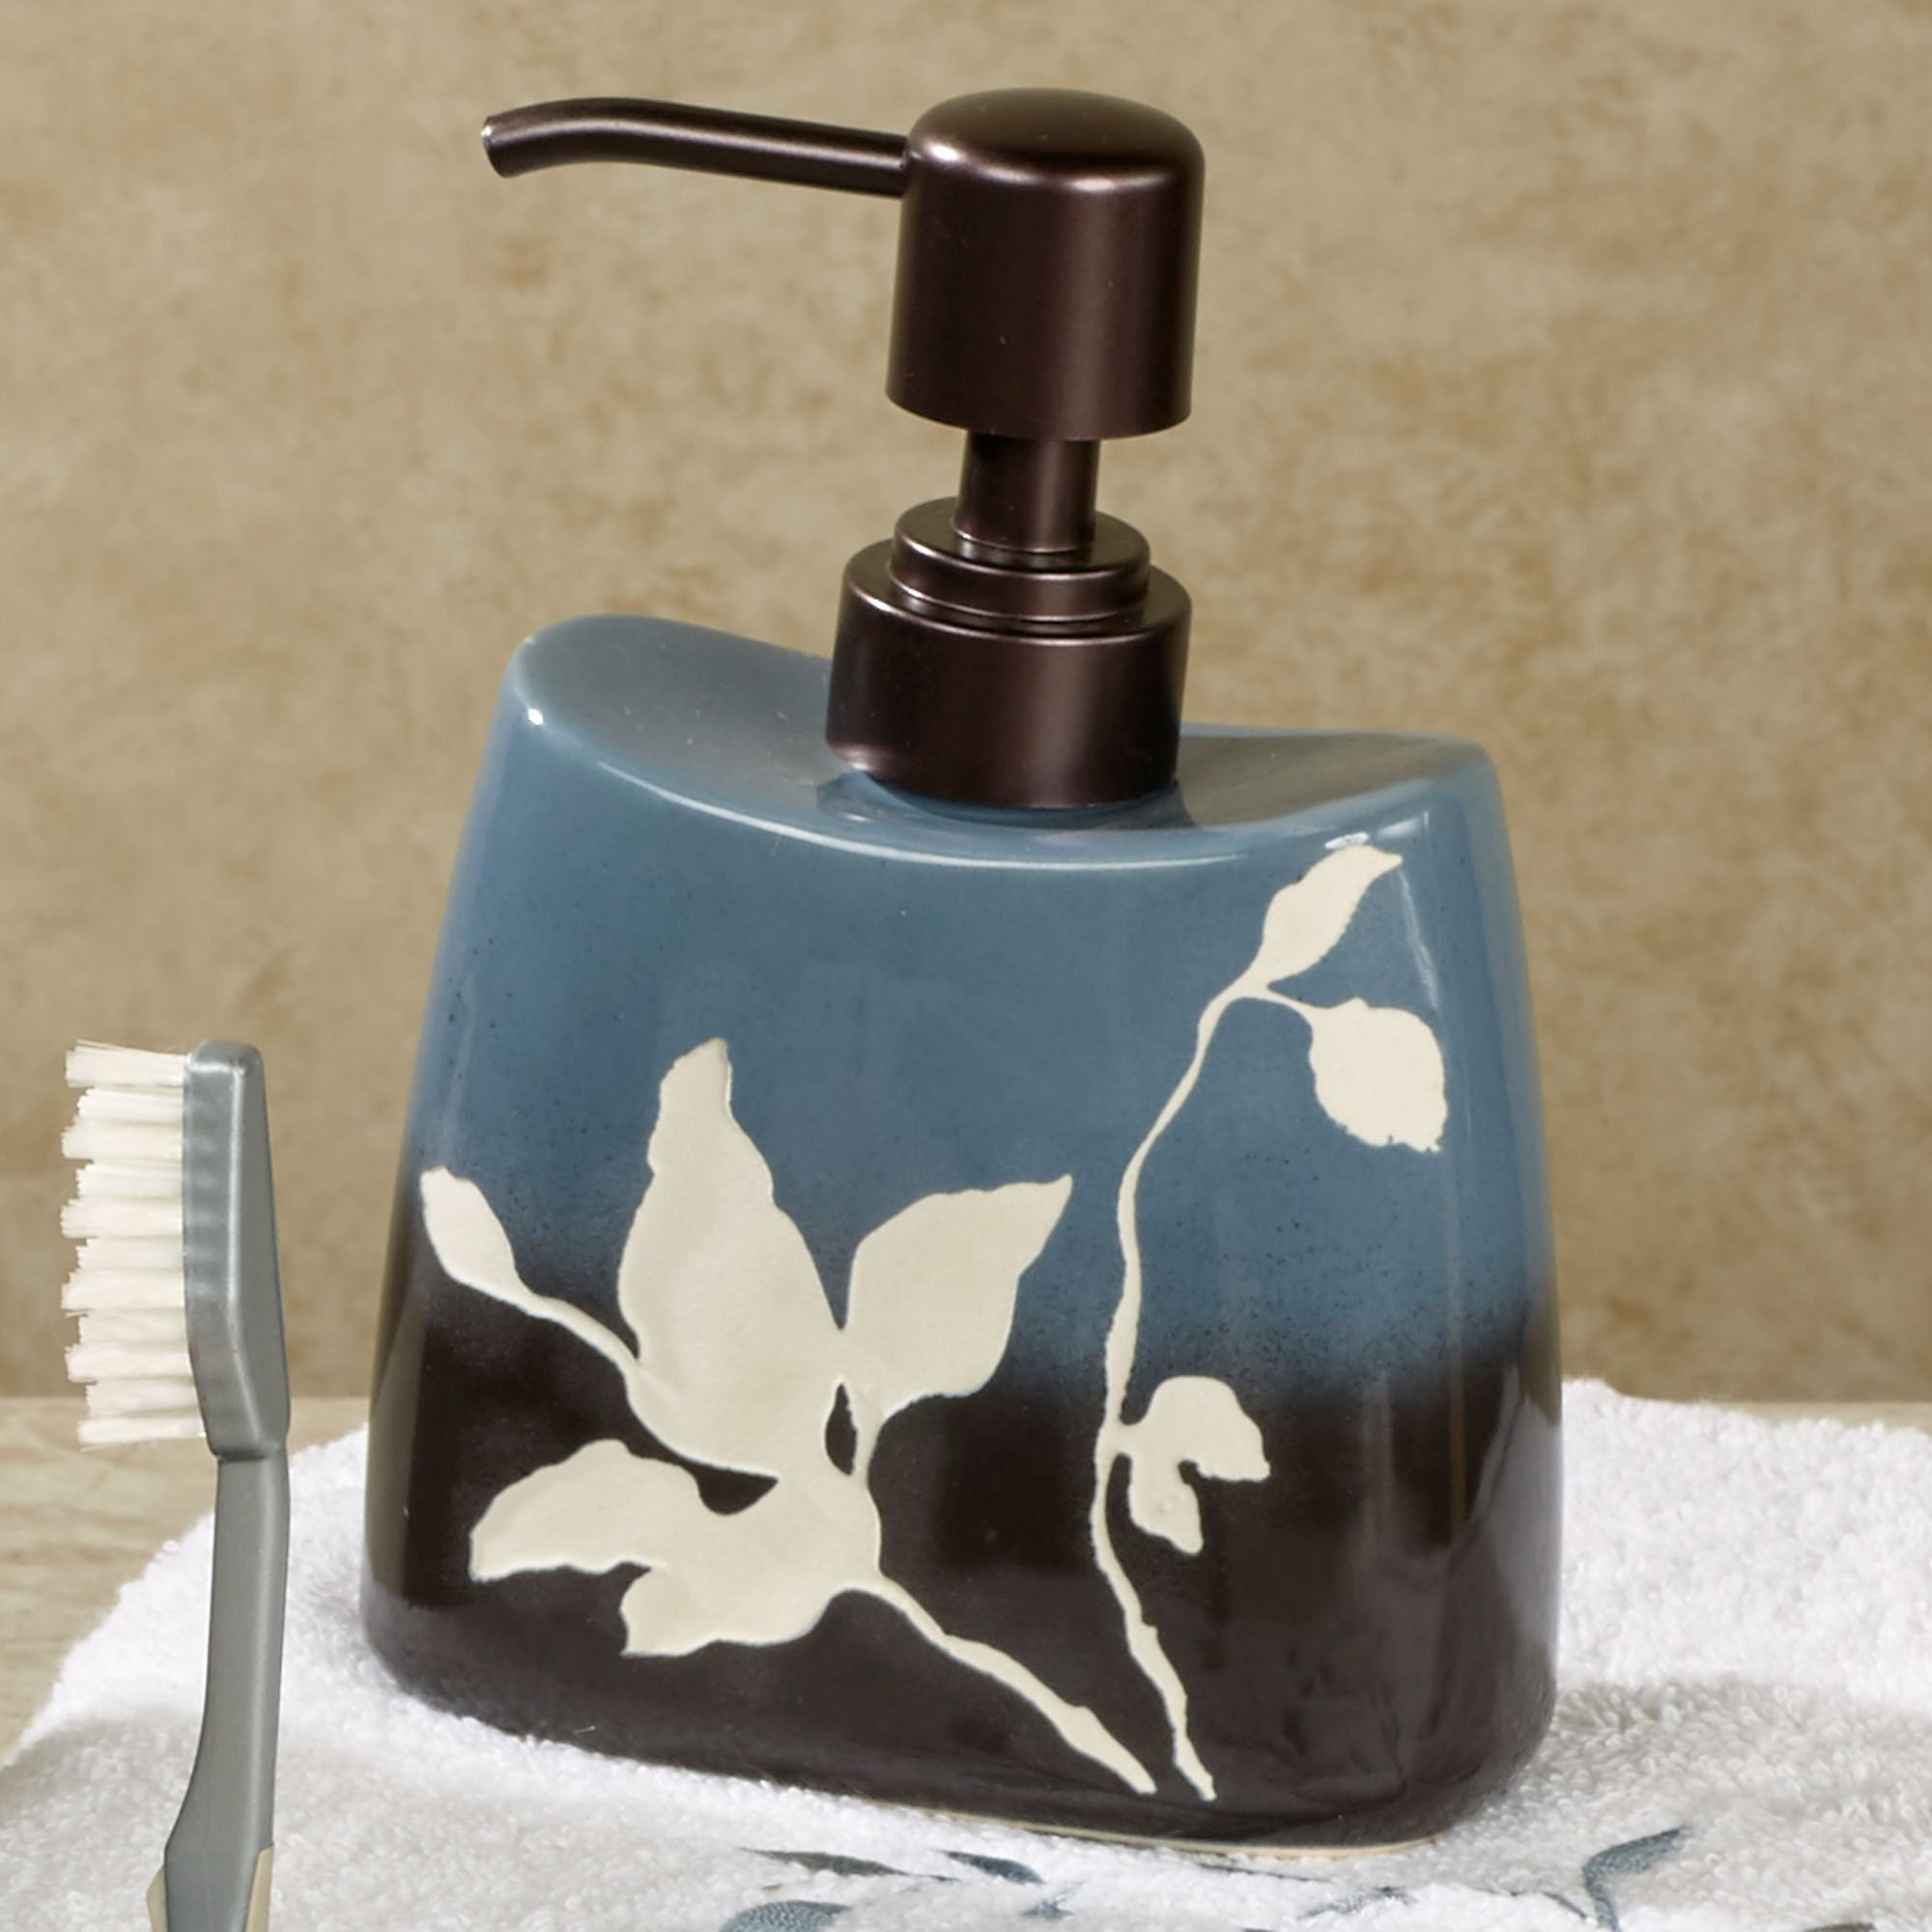 bathroom soap dispensers bath accessories. Passell Lotion Soap Dispenser Slate Blue and Brown Ceramic Bath Accessories